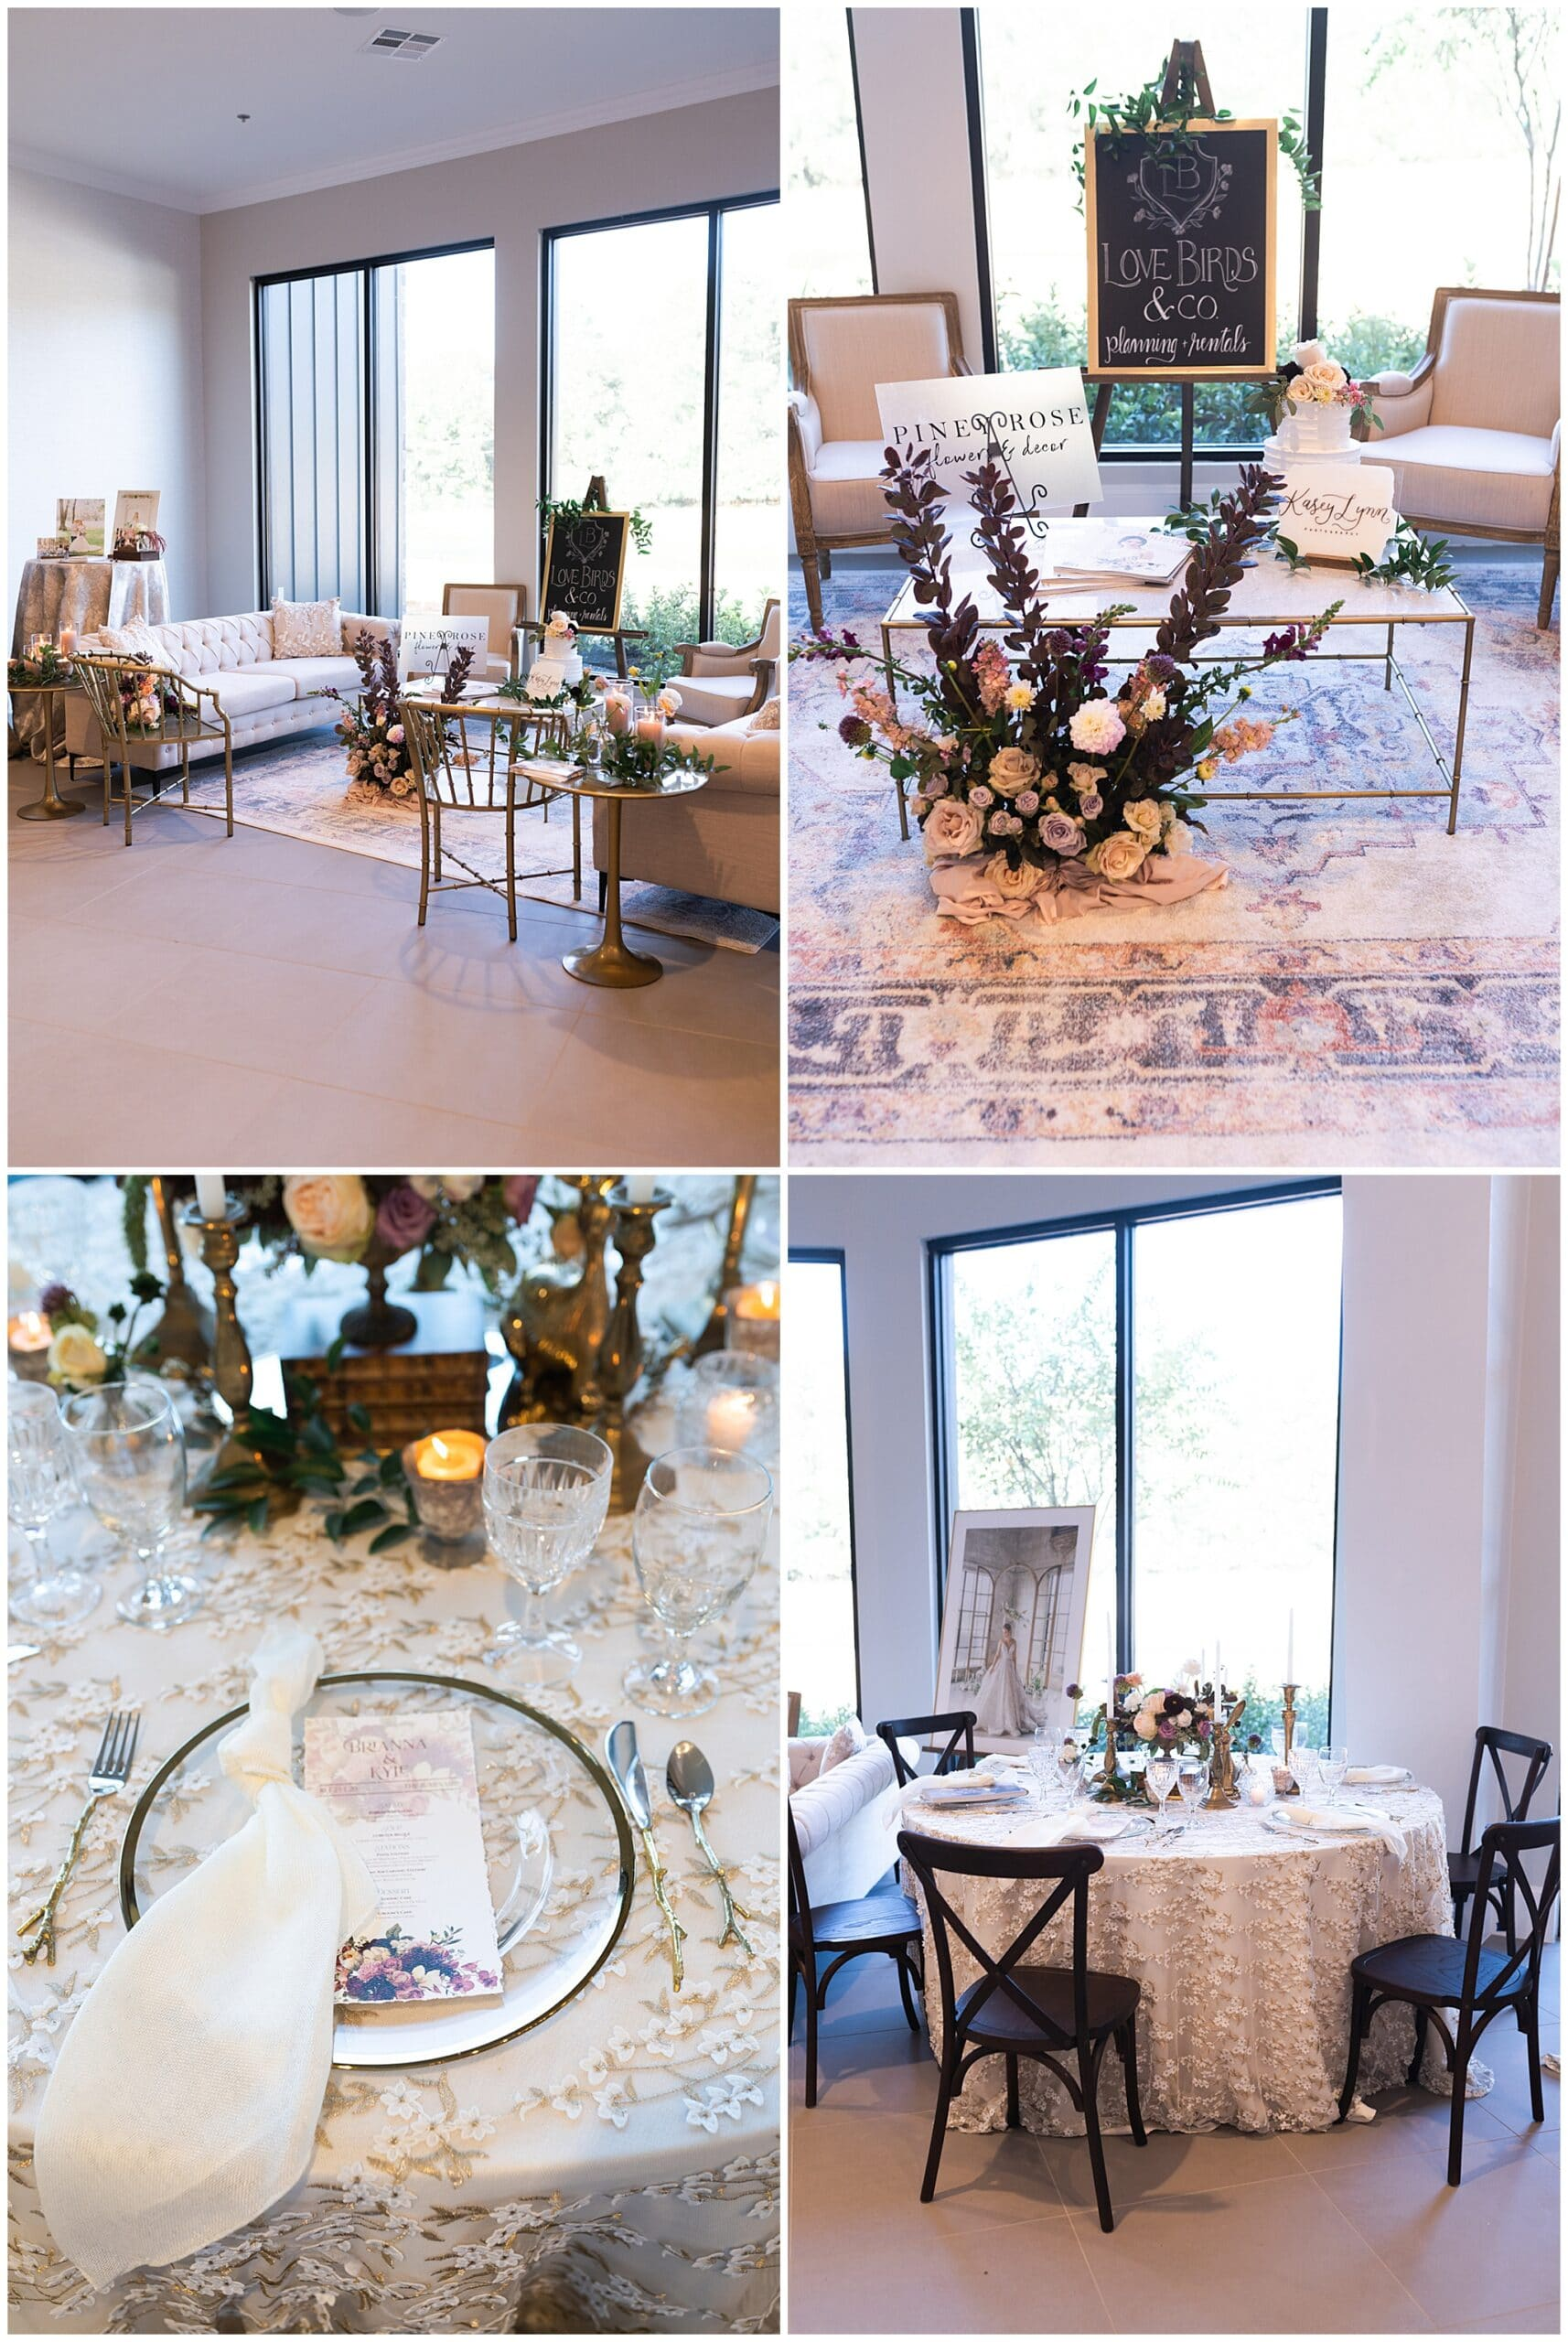 Houston wedding venue at their open house table setting for a wedding reception captured by Swish and Click Photography